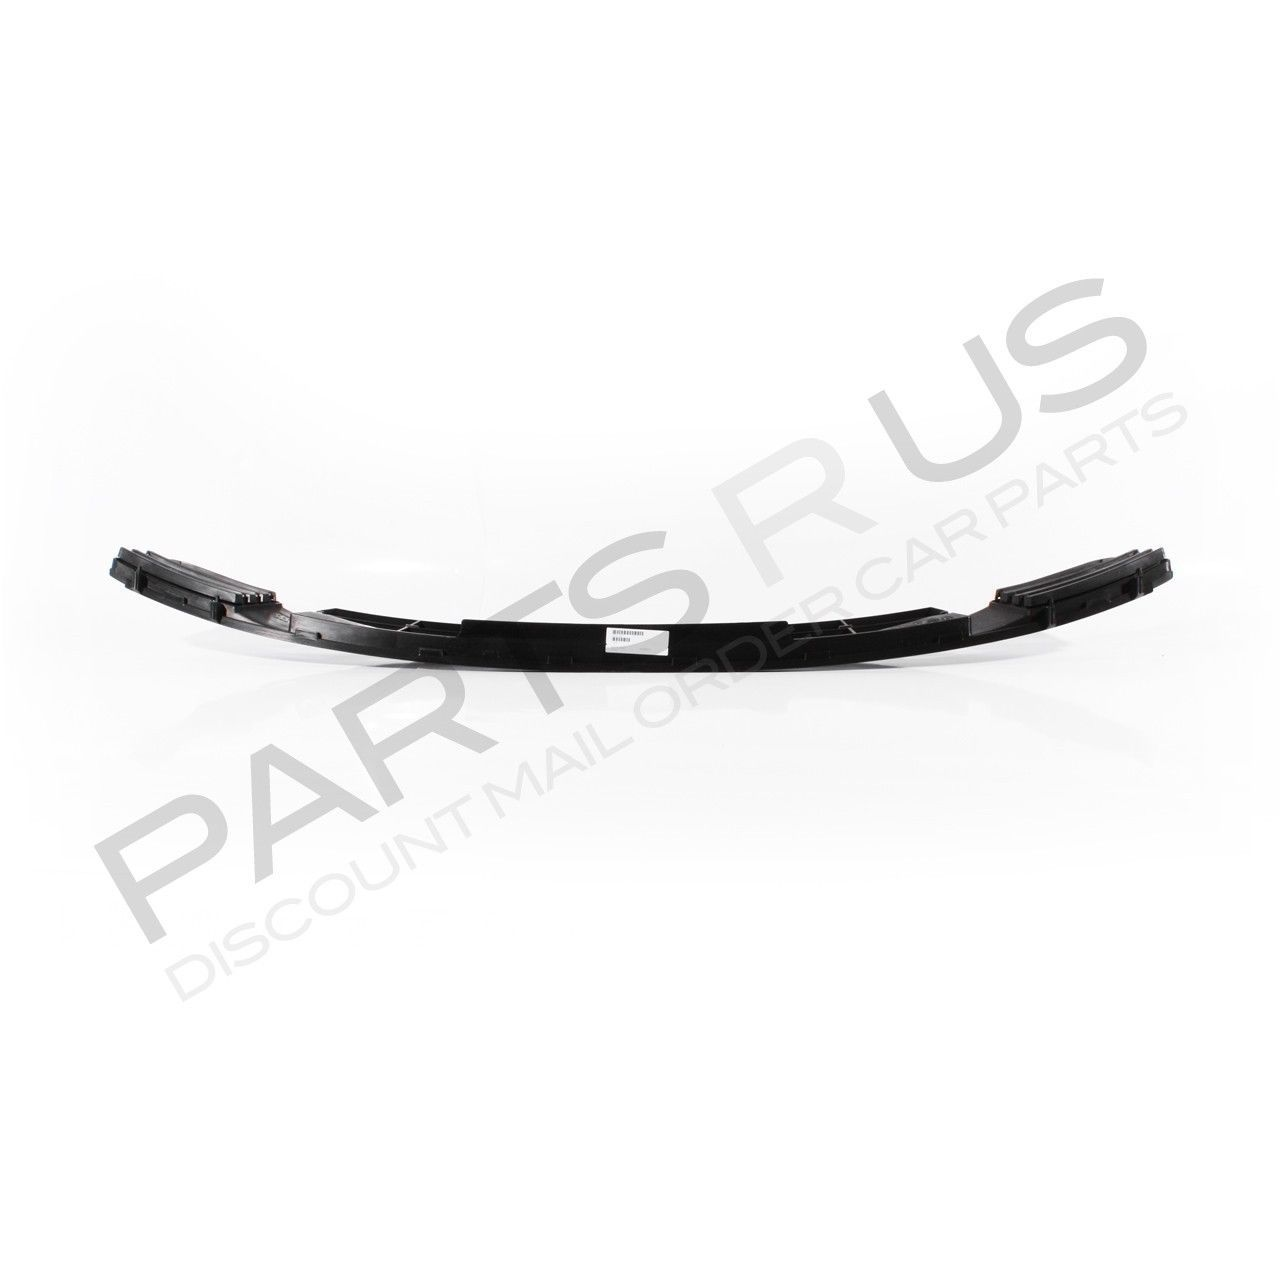 Grille 03-07 Ford BA & BF Fairlane Ghia 4 Door Sedan Front